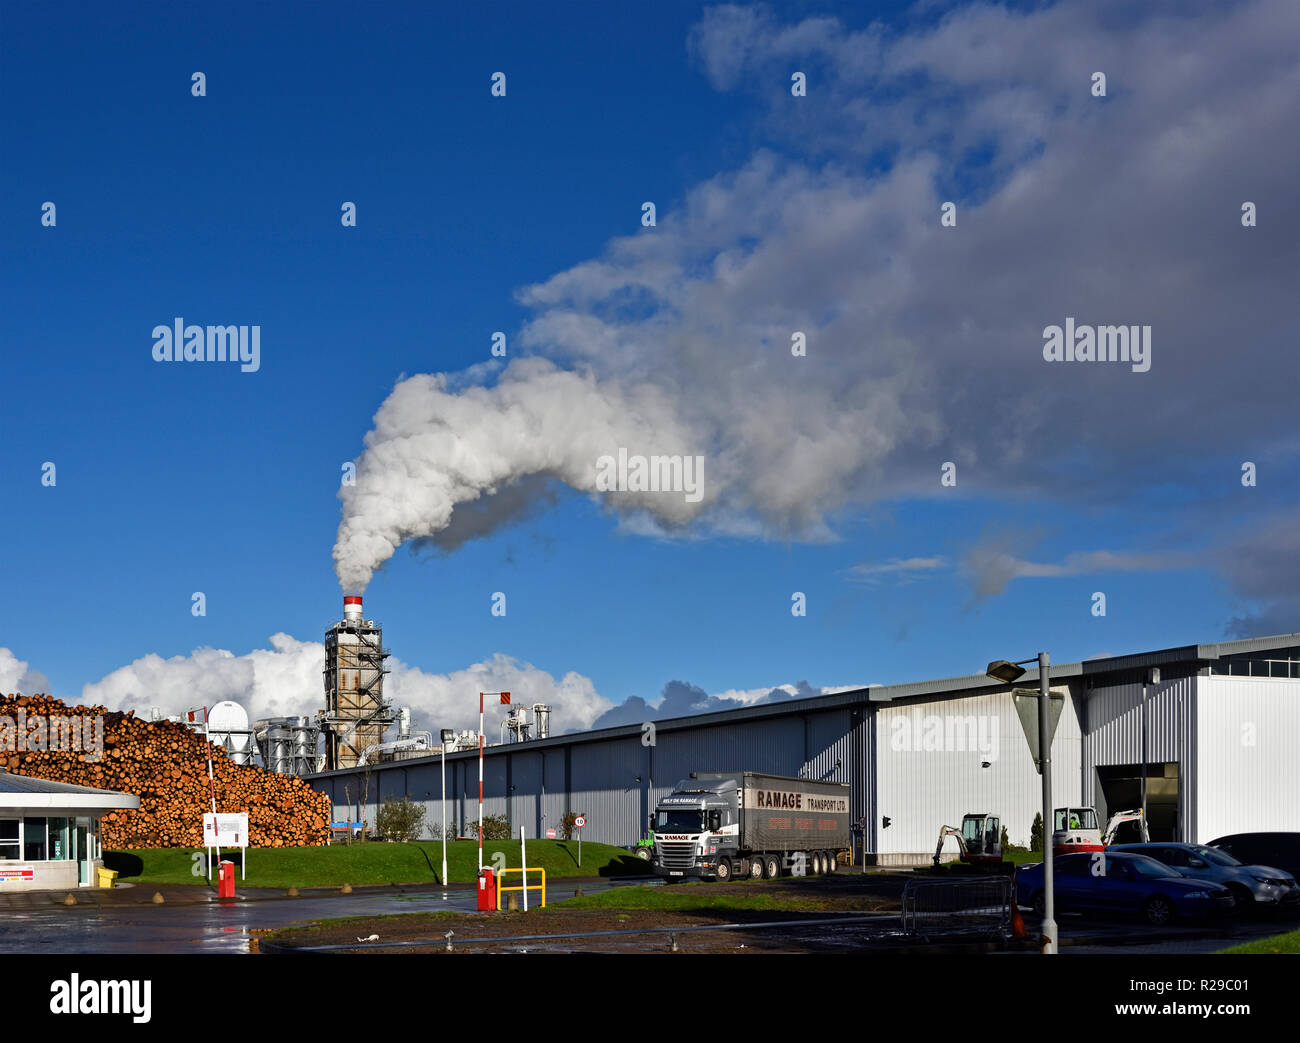 Ramage Transport Ltd. Heavy Goods Vehicle at Egger Barony industrial plant. Auchinleck, East Ayrshire, Scotland, United Kingdom, Europe. Stock Photo